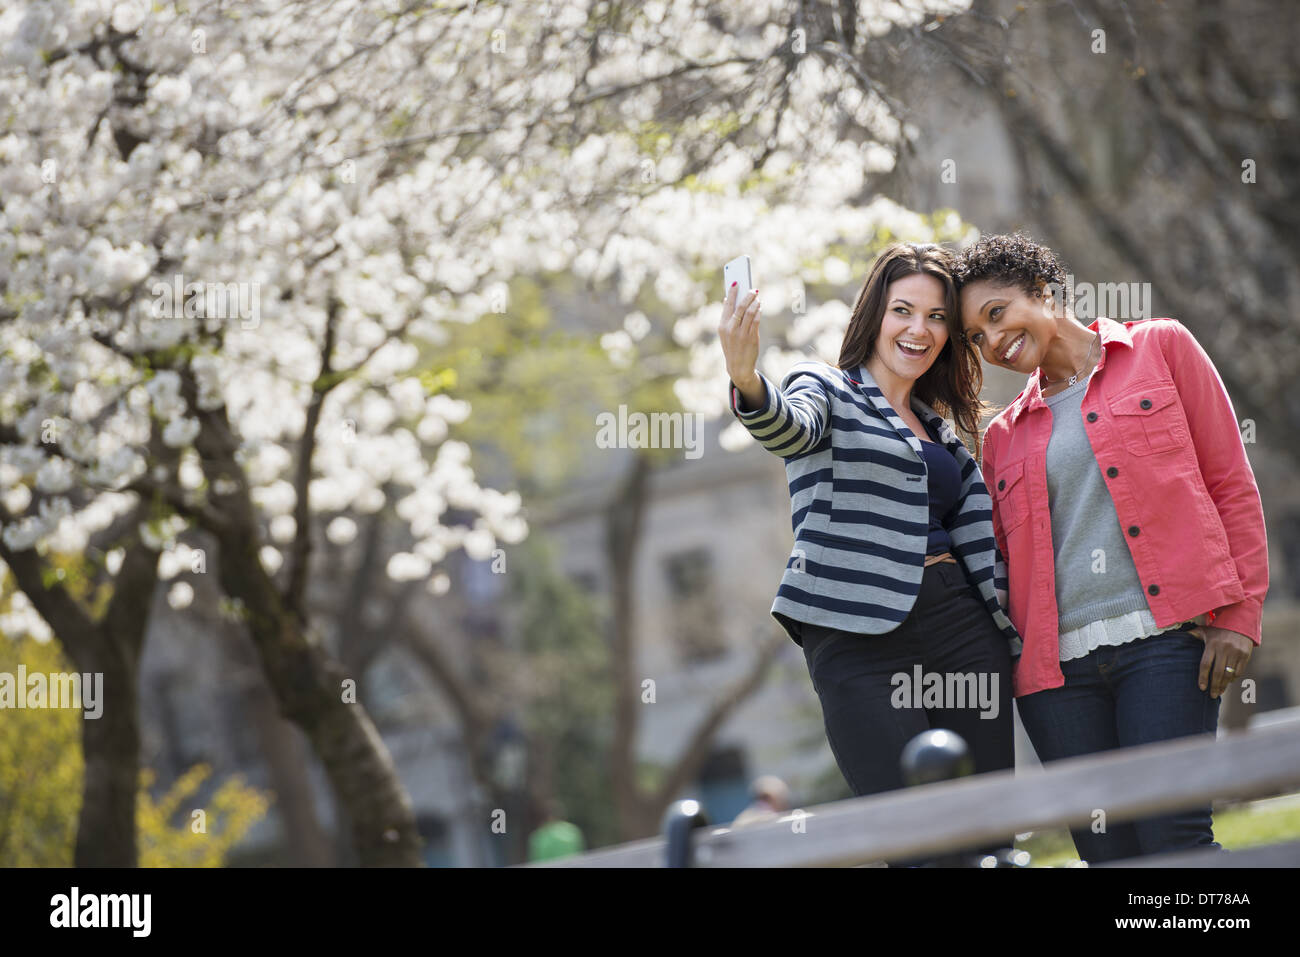 spring time. New York City park. A young woman holding out a phone to take a photograph of herself and a companion. - Stock Image